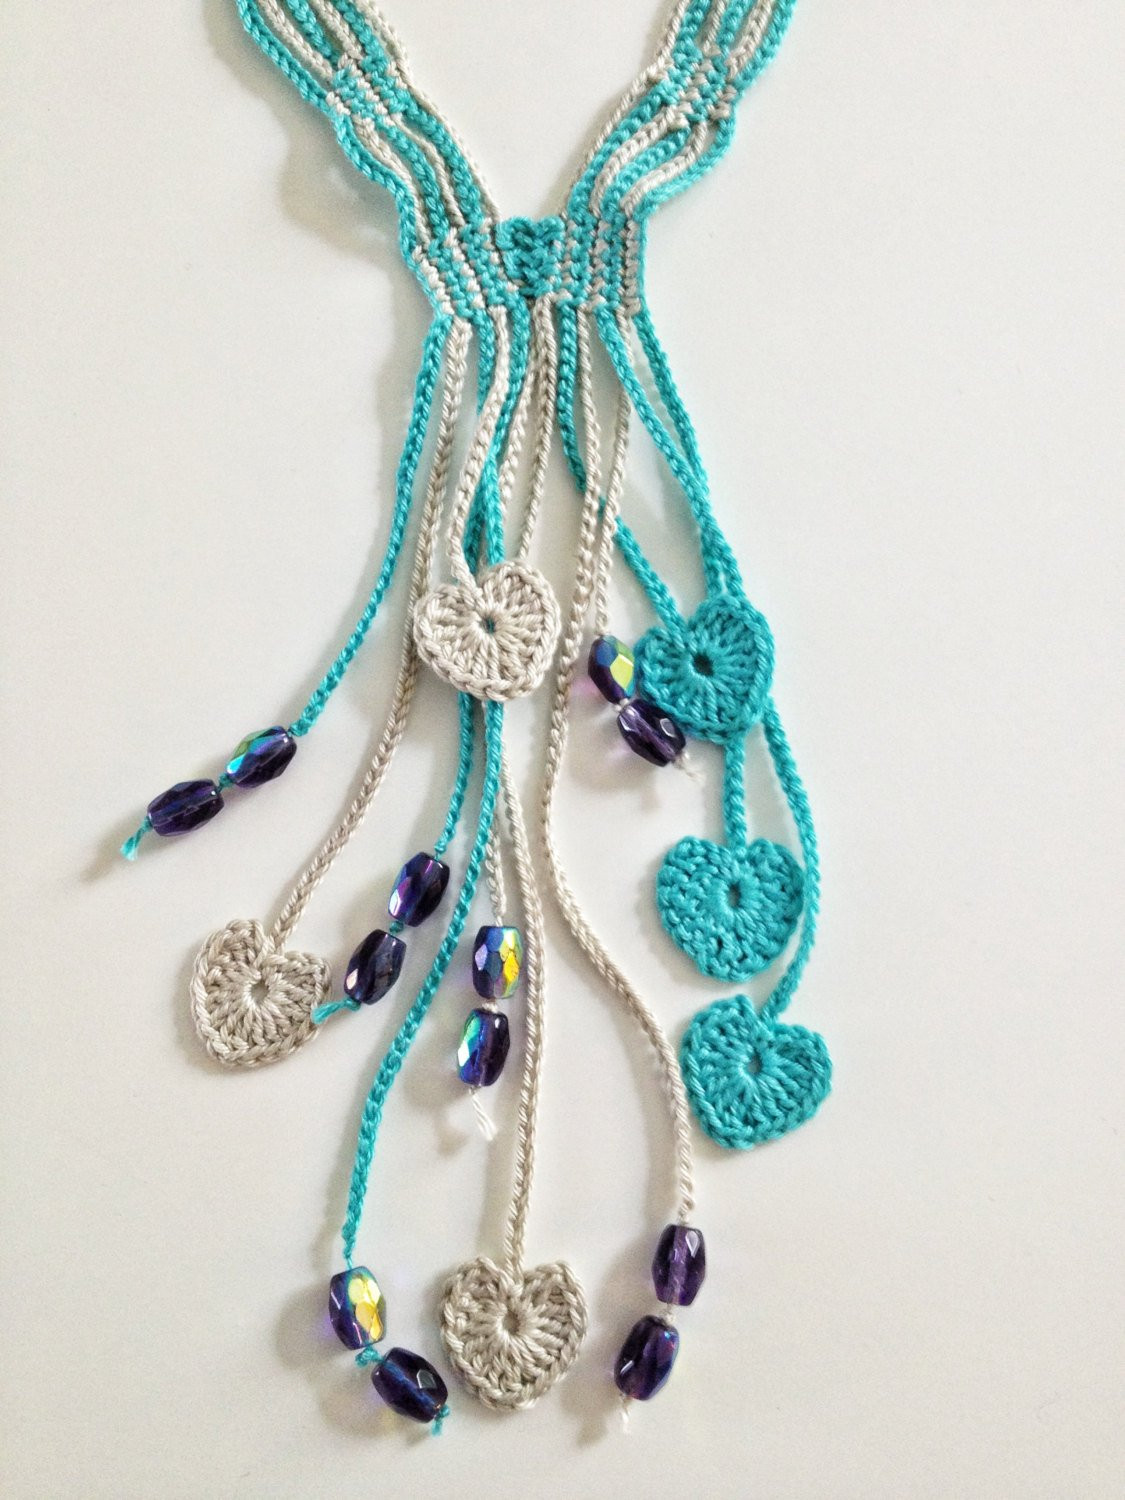 Crochet Beaded Necklace Lovely Blue Hearts Beaded Crochet Necklace Of Contemporary 43 Images Crochet Beaded Necklace